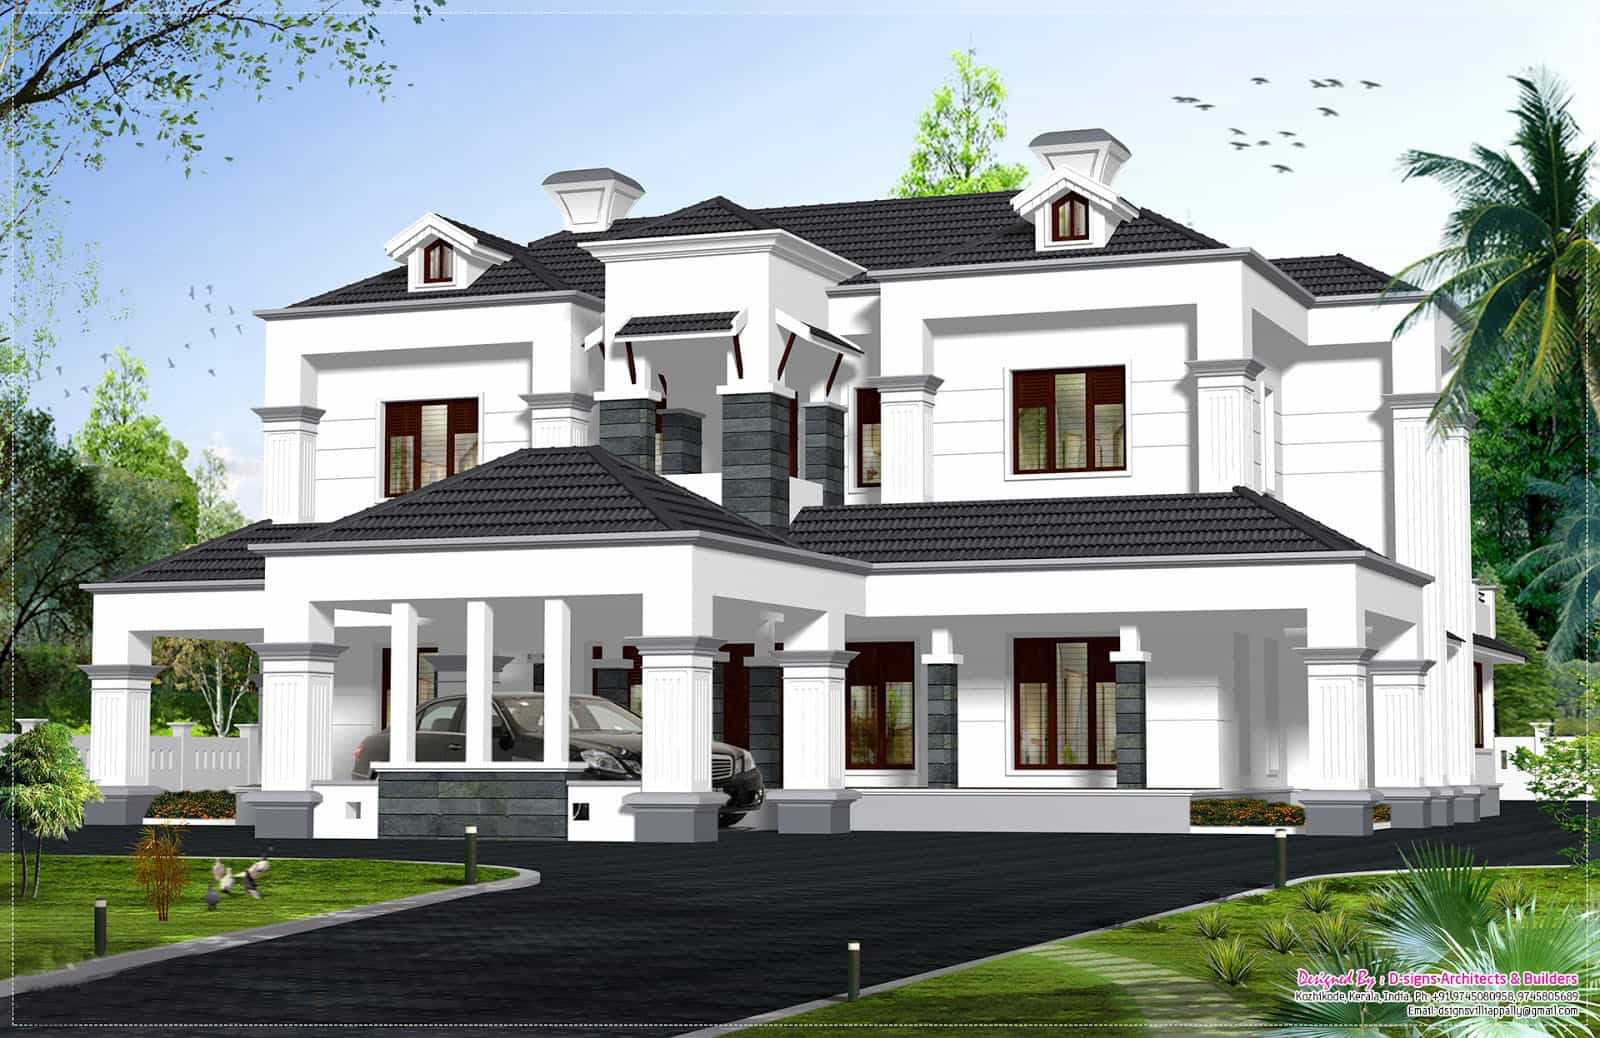 Low cost house in kerala with plan photos 991 sq ft khp for Model house design 2016